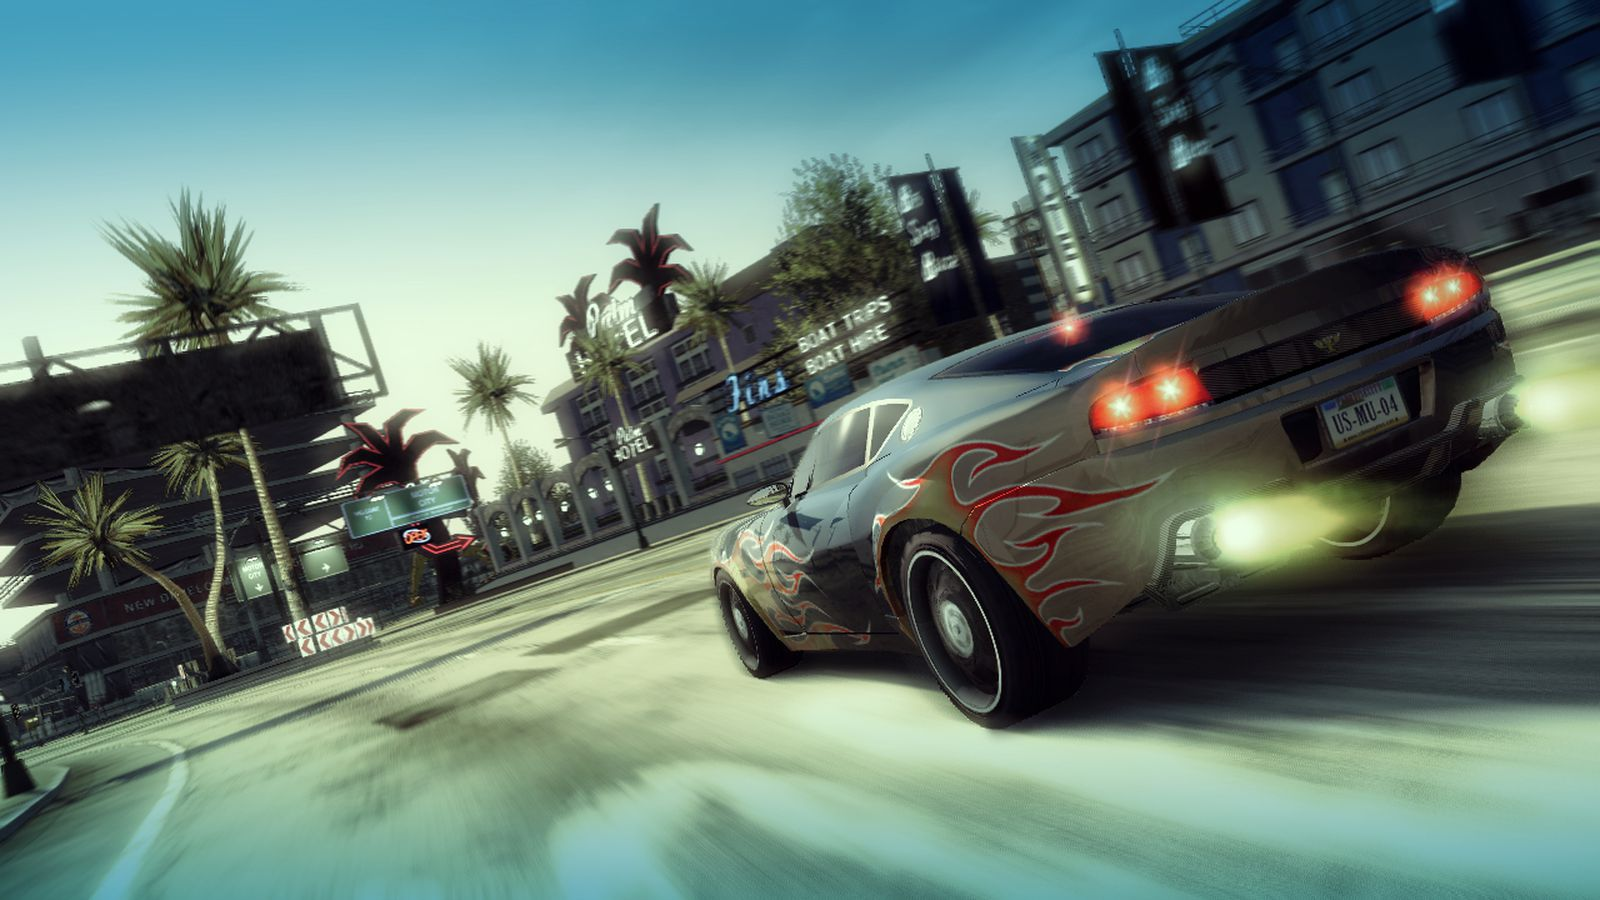 Burnout Paradise, Sleeping Dogs lead December's Xbox Games